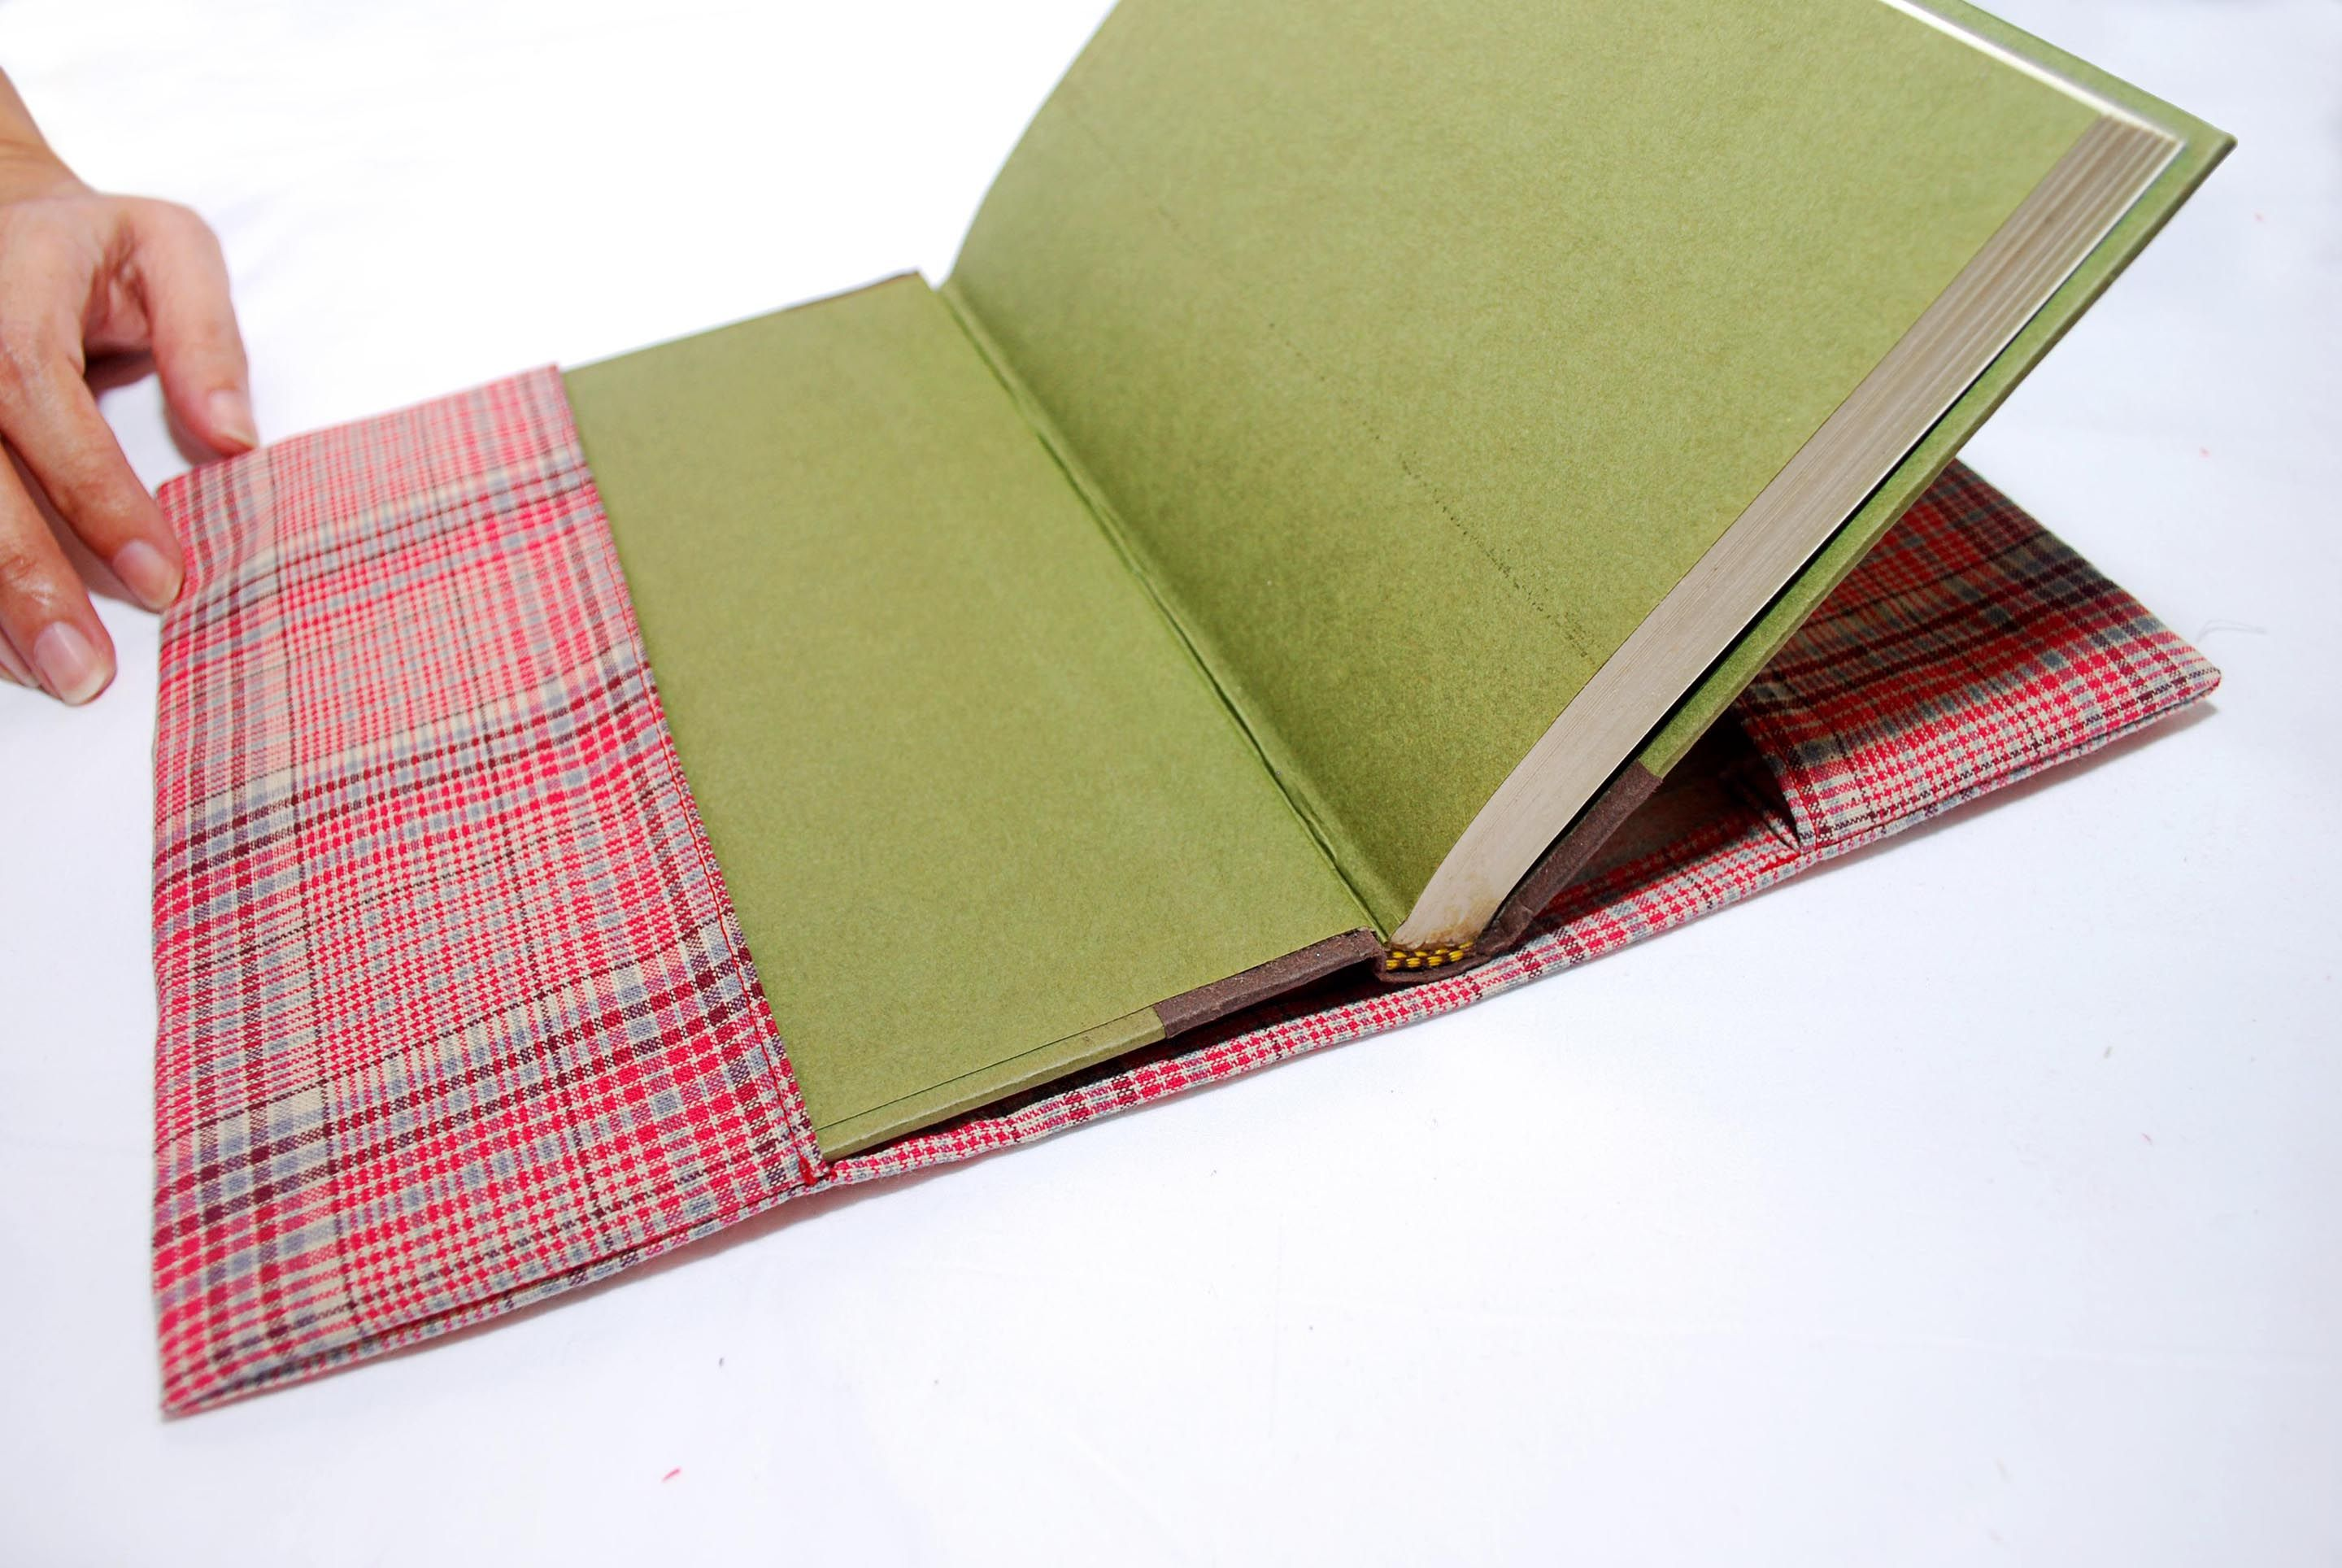 How To Make A Book Cover Look Old And Worn ~ Sew a fabric book cover all things books. pinterest fabric